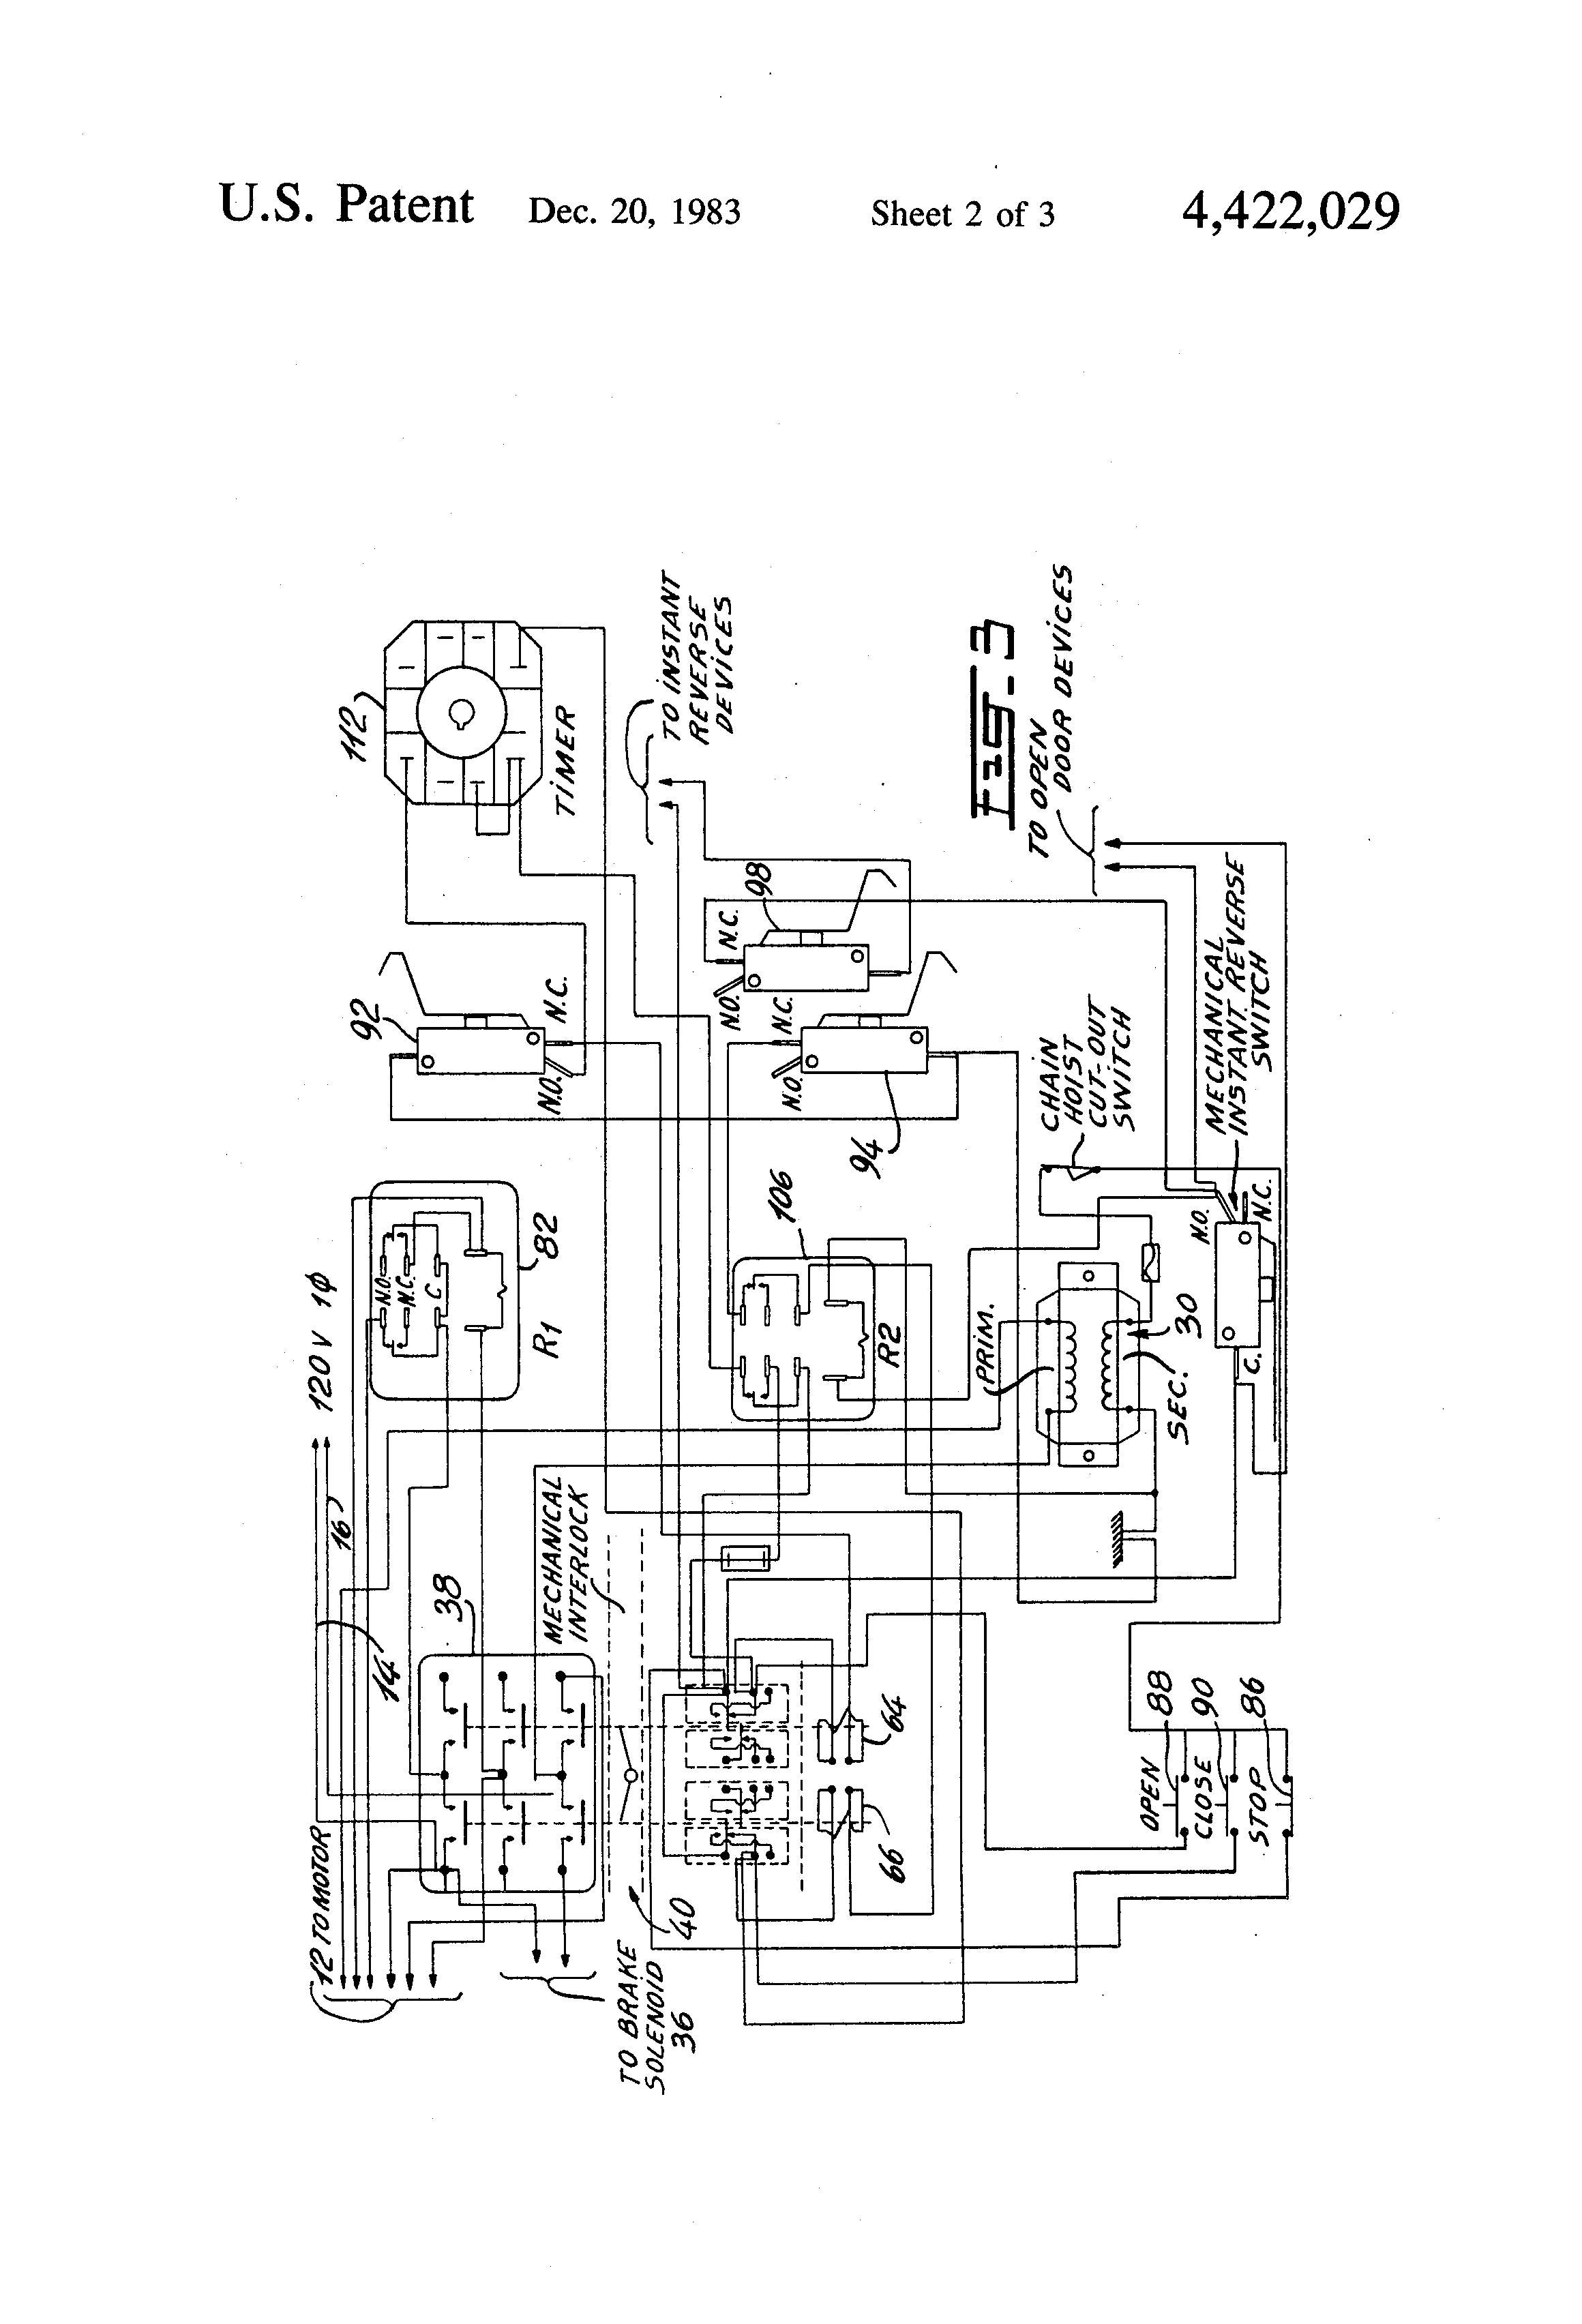 Single Phase Motor Wiring Diagram For A Switch - Wiring Diagrams on